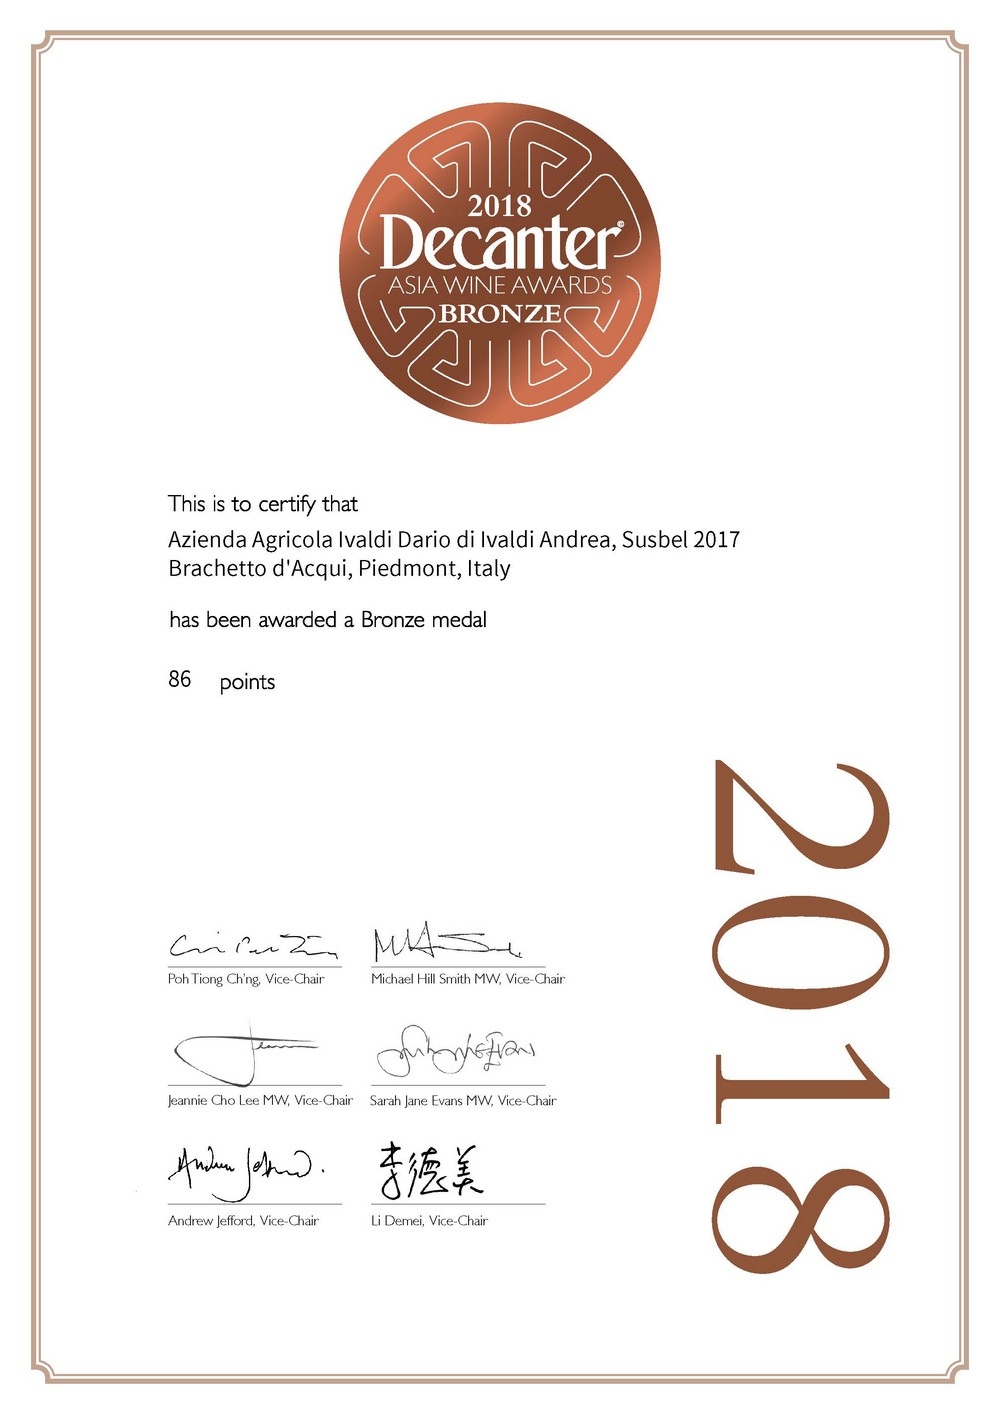 Premio Decanter 2018 al Brachetto d'Acqui Susbel 2017